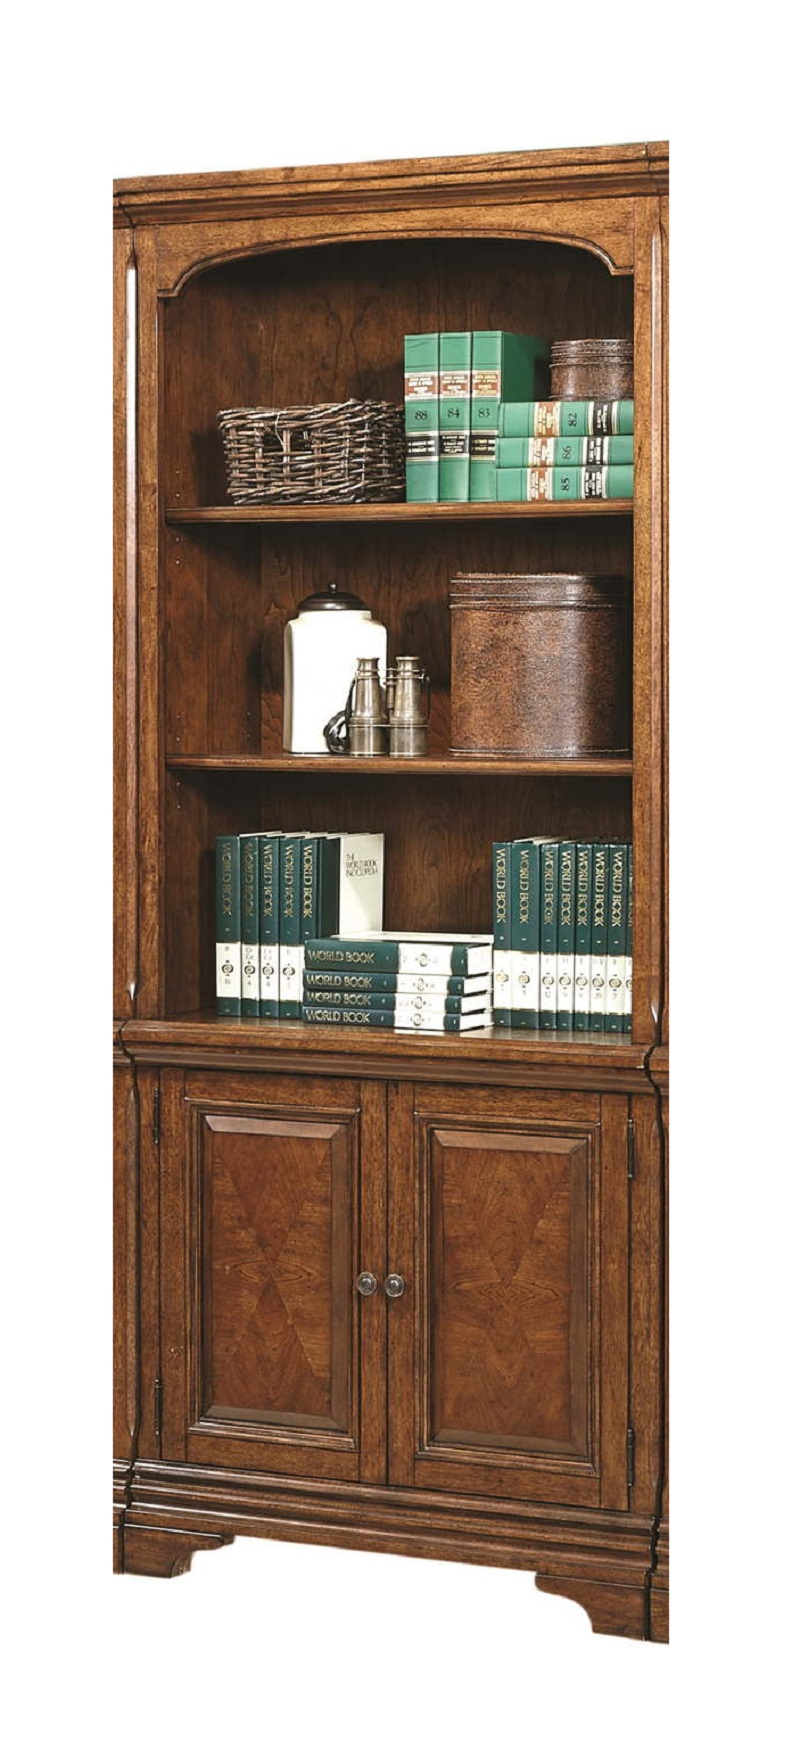 Aspenhome Hawthorne Door Bookcase in Brown Cherry I26332